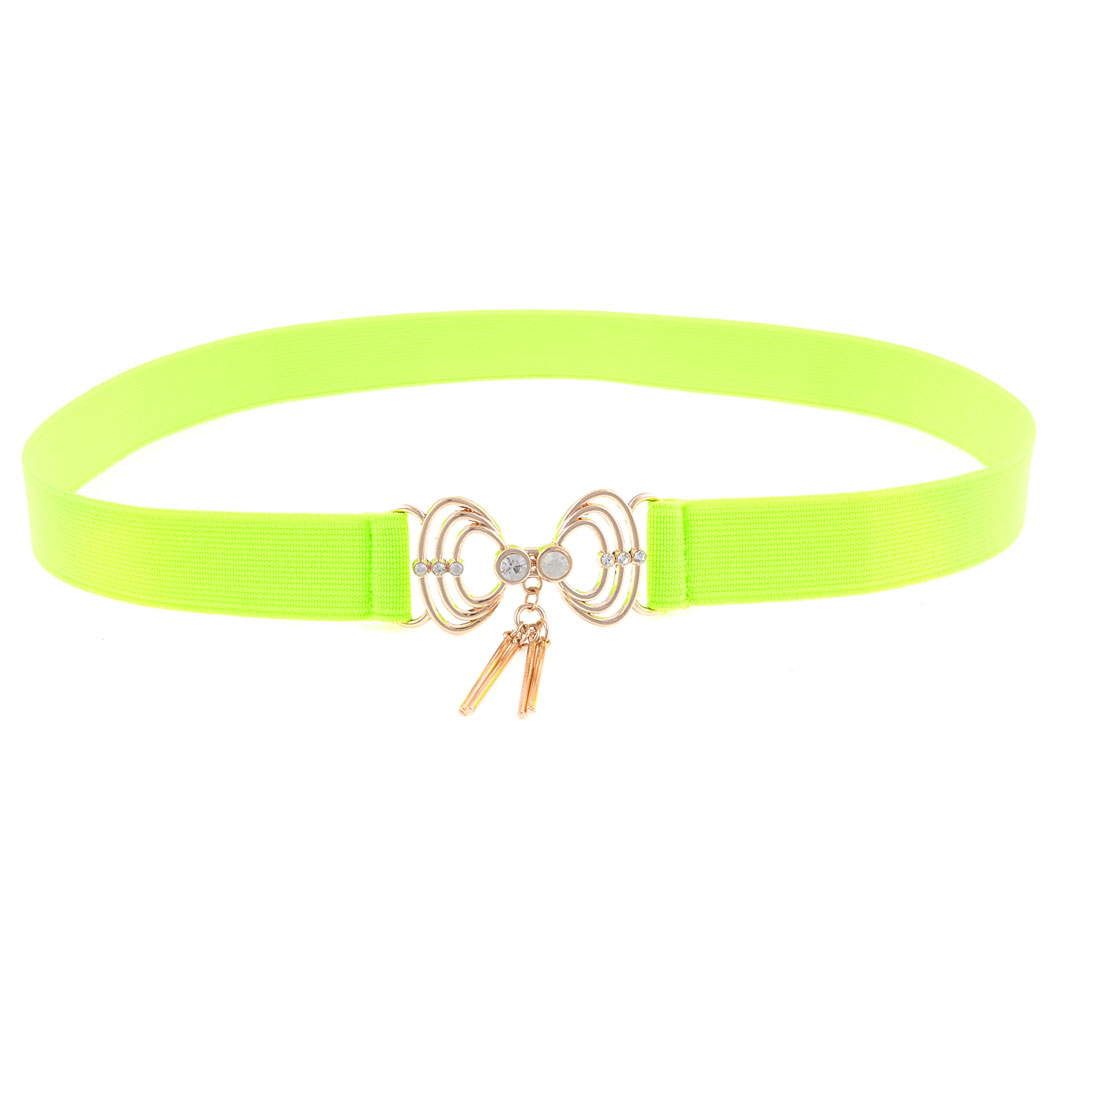 Lady Yellowgreen Shell Design Interlock Buckle Elastic Cinch Belt